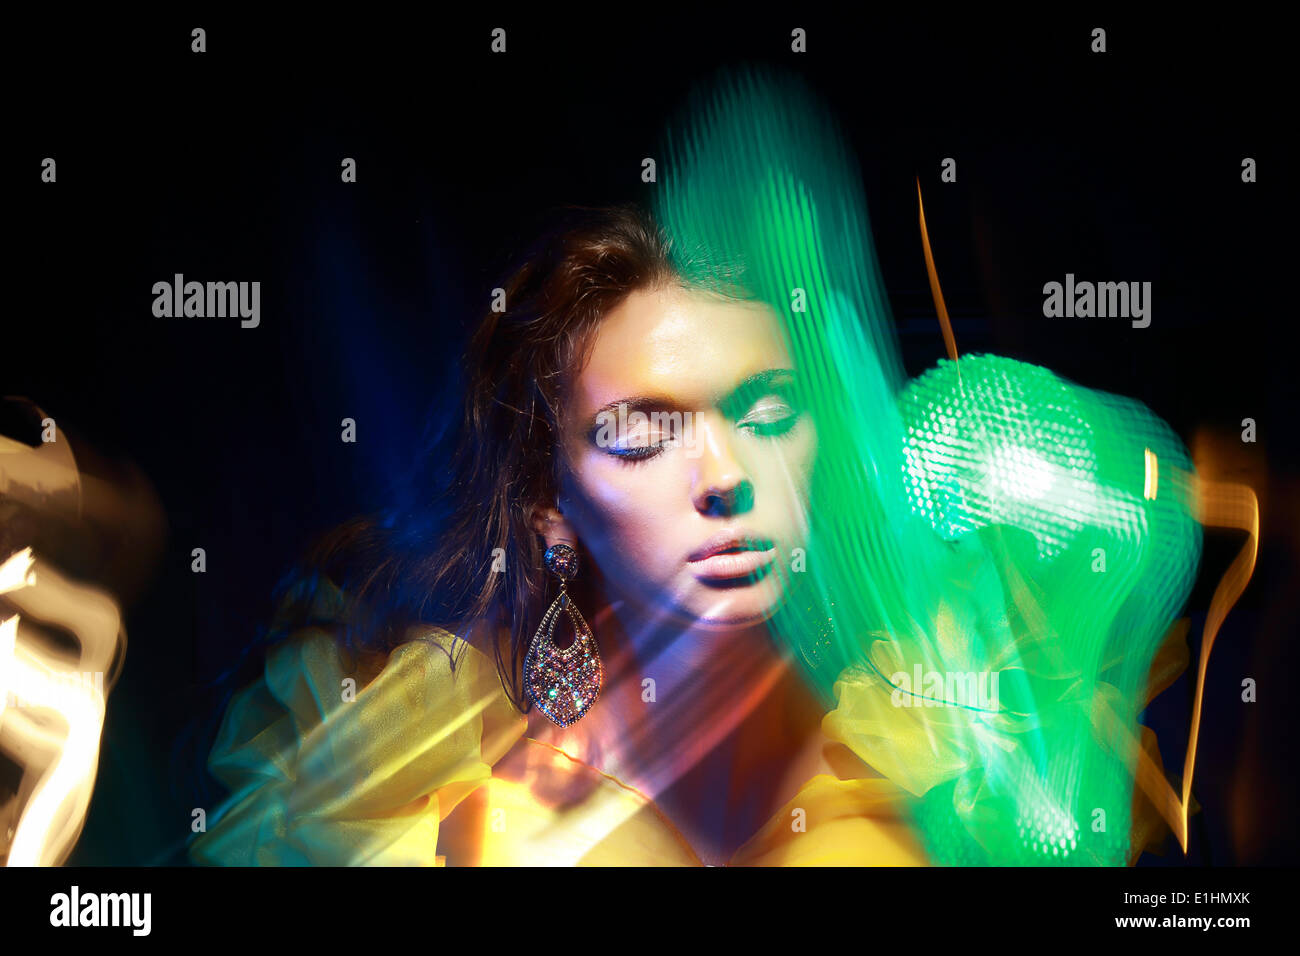 Flutter. Face of Woman in Blurry Colorful Lights. Metamorphose - Stock Image